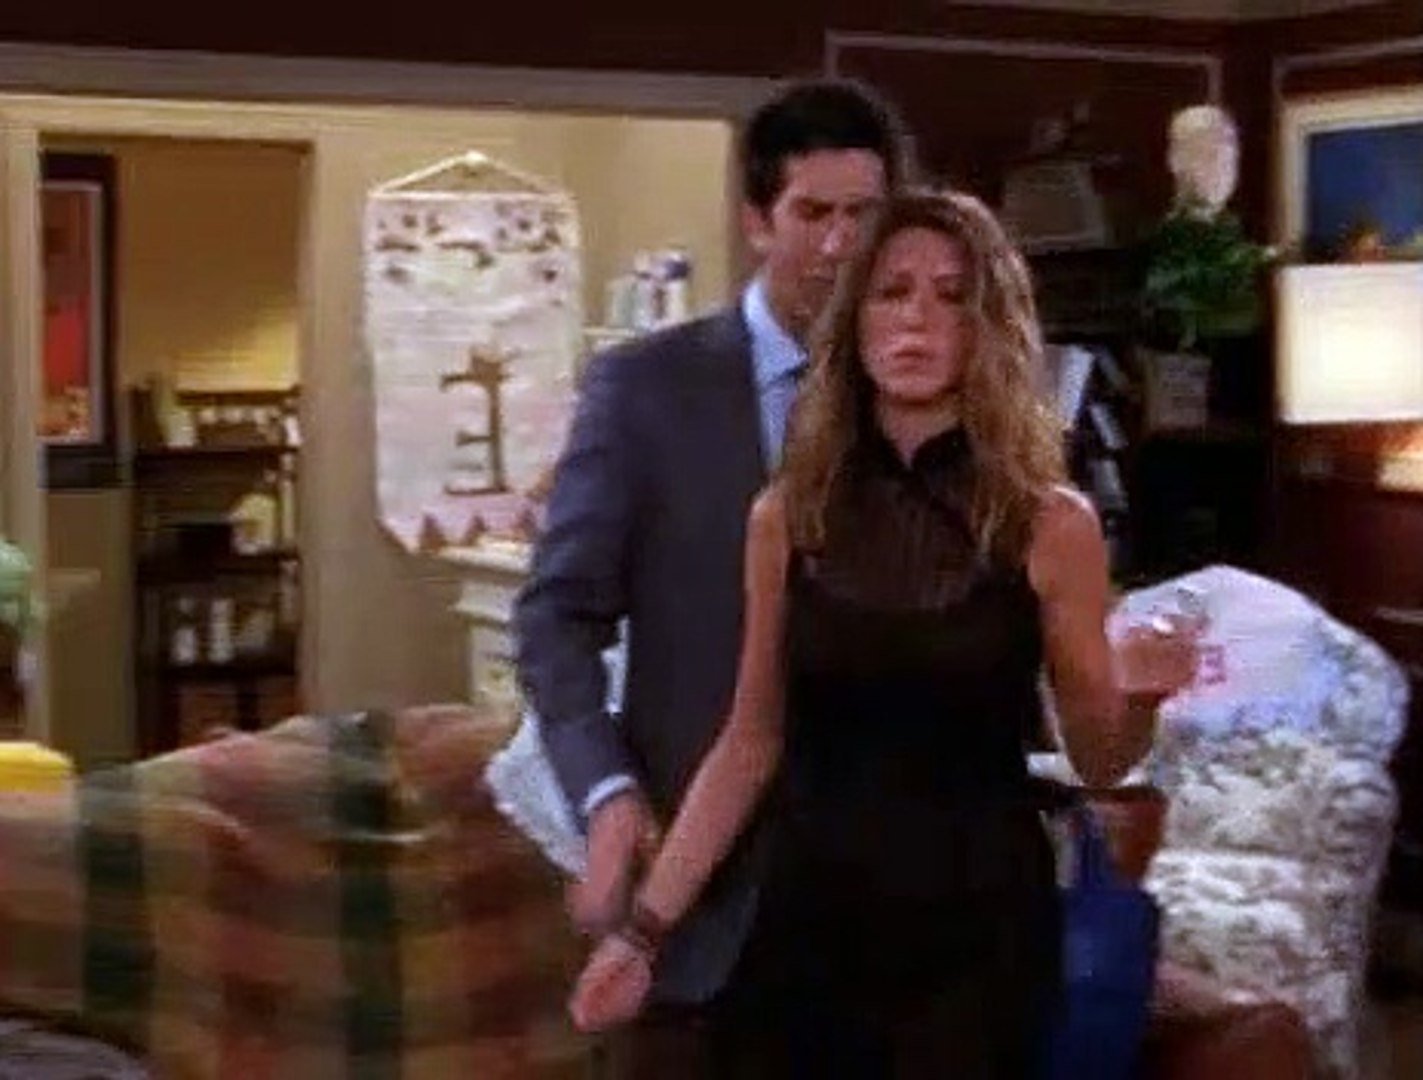 Friends S09E05 The One with Phoebe's Birthday Dinner